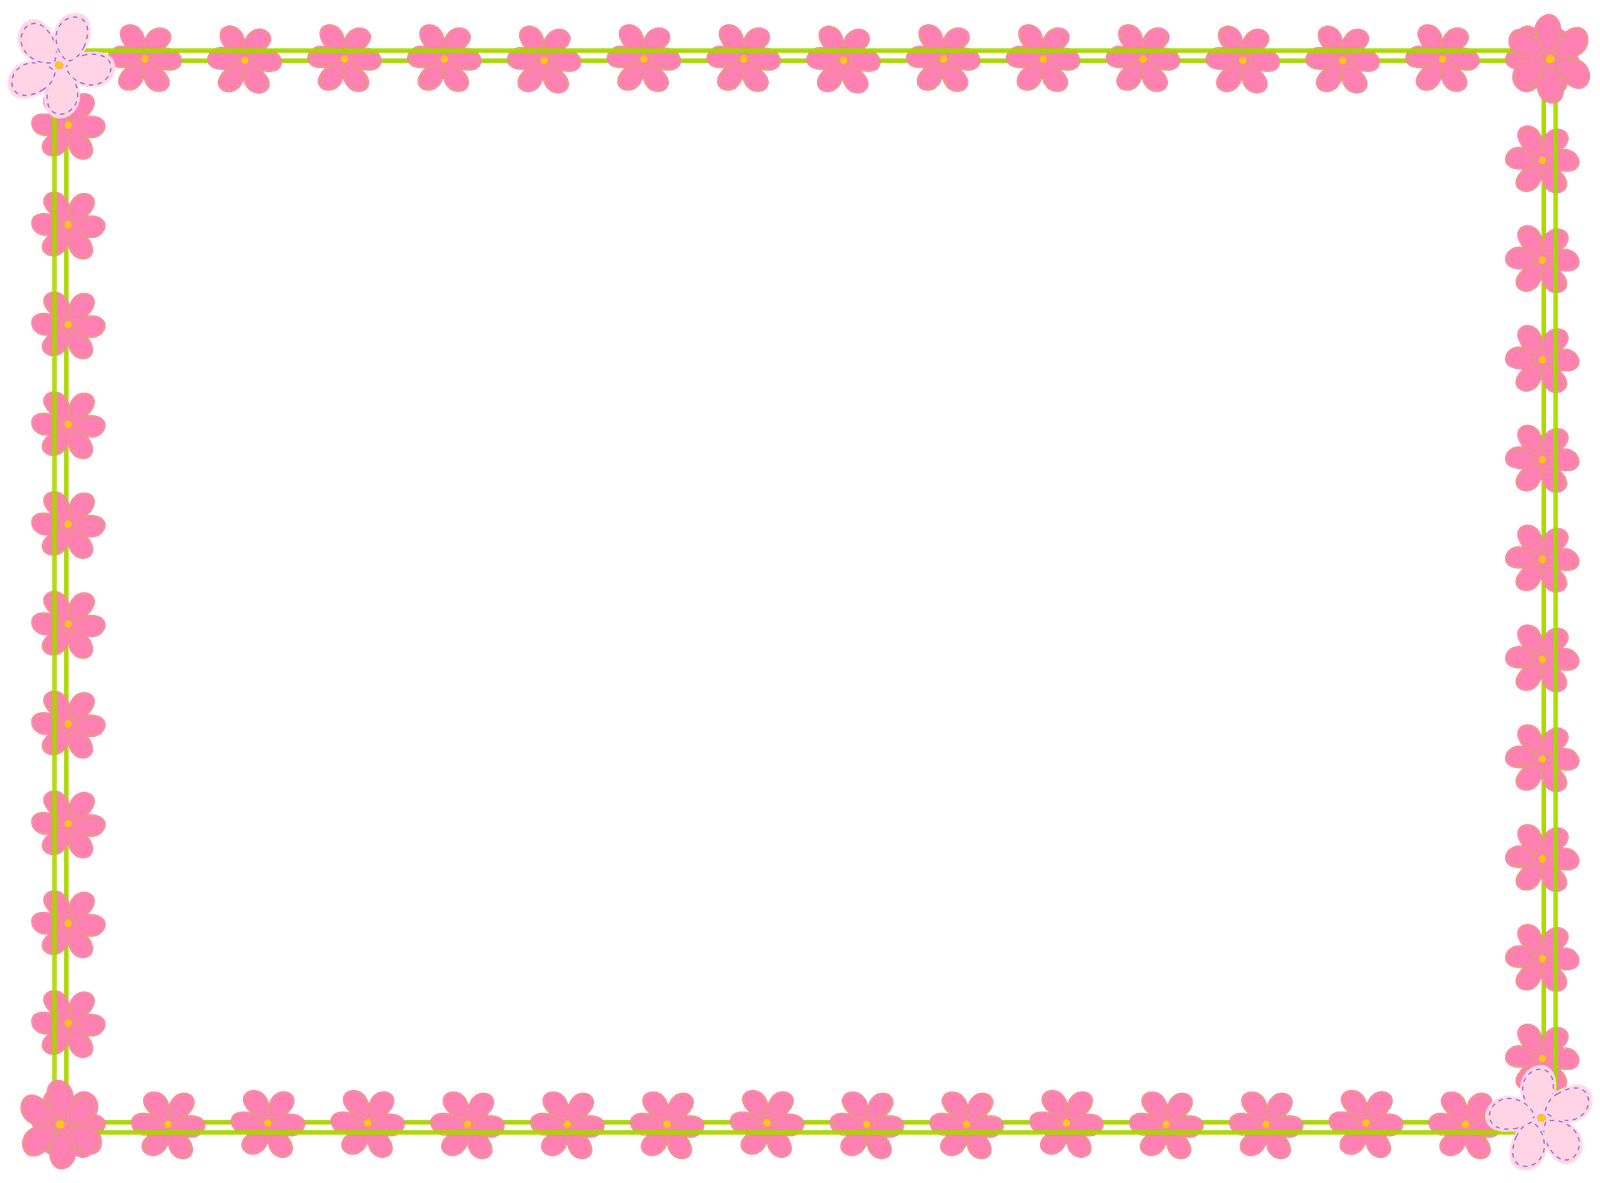 Meeting clipart background. Frame cliparts pink with